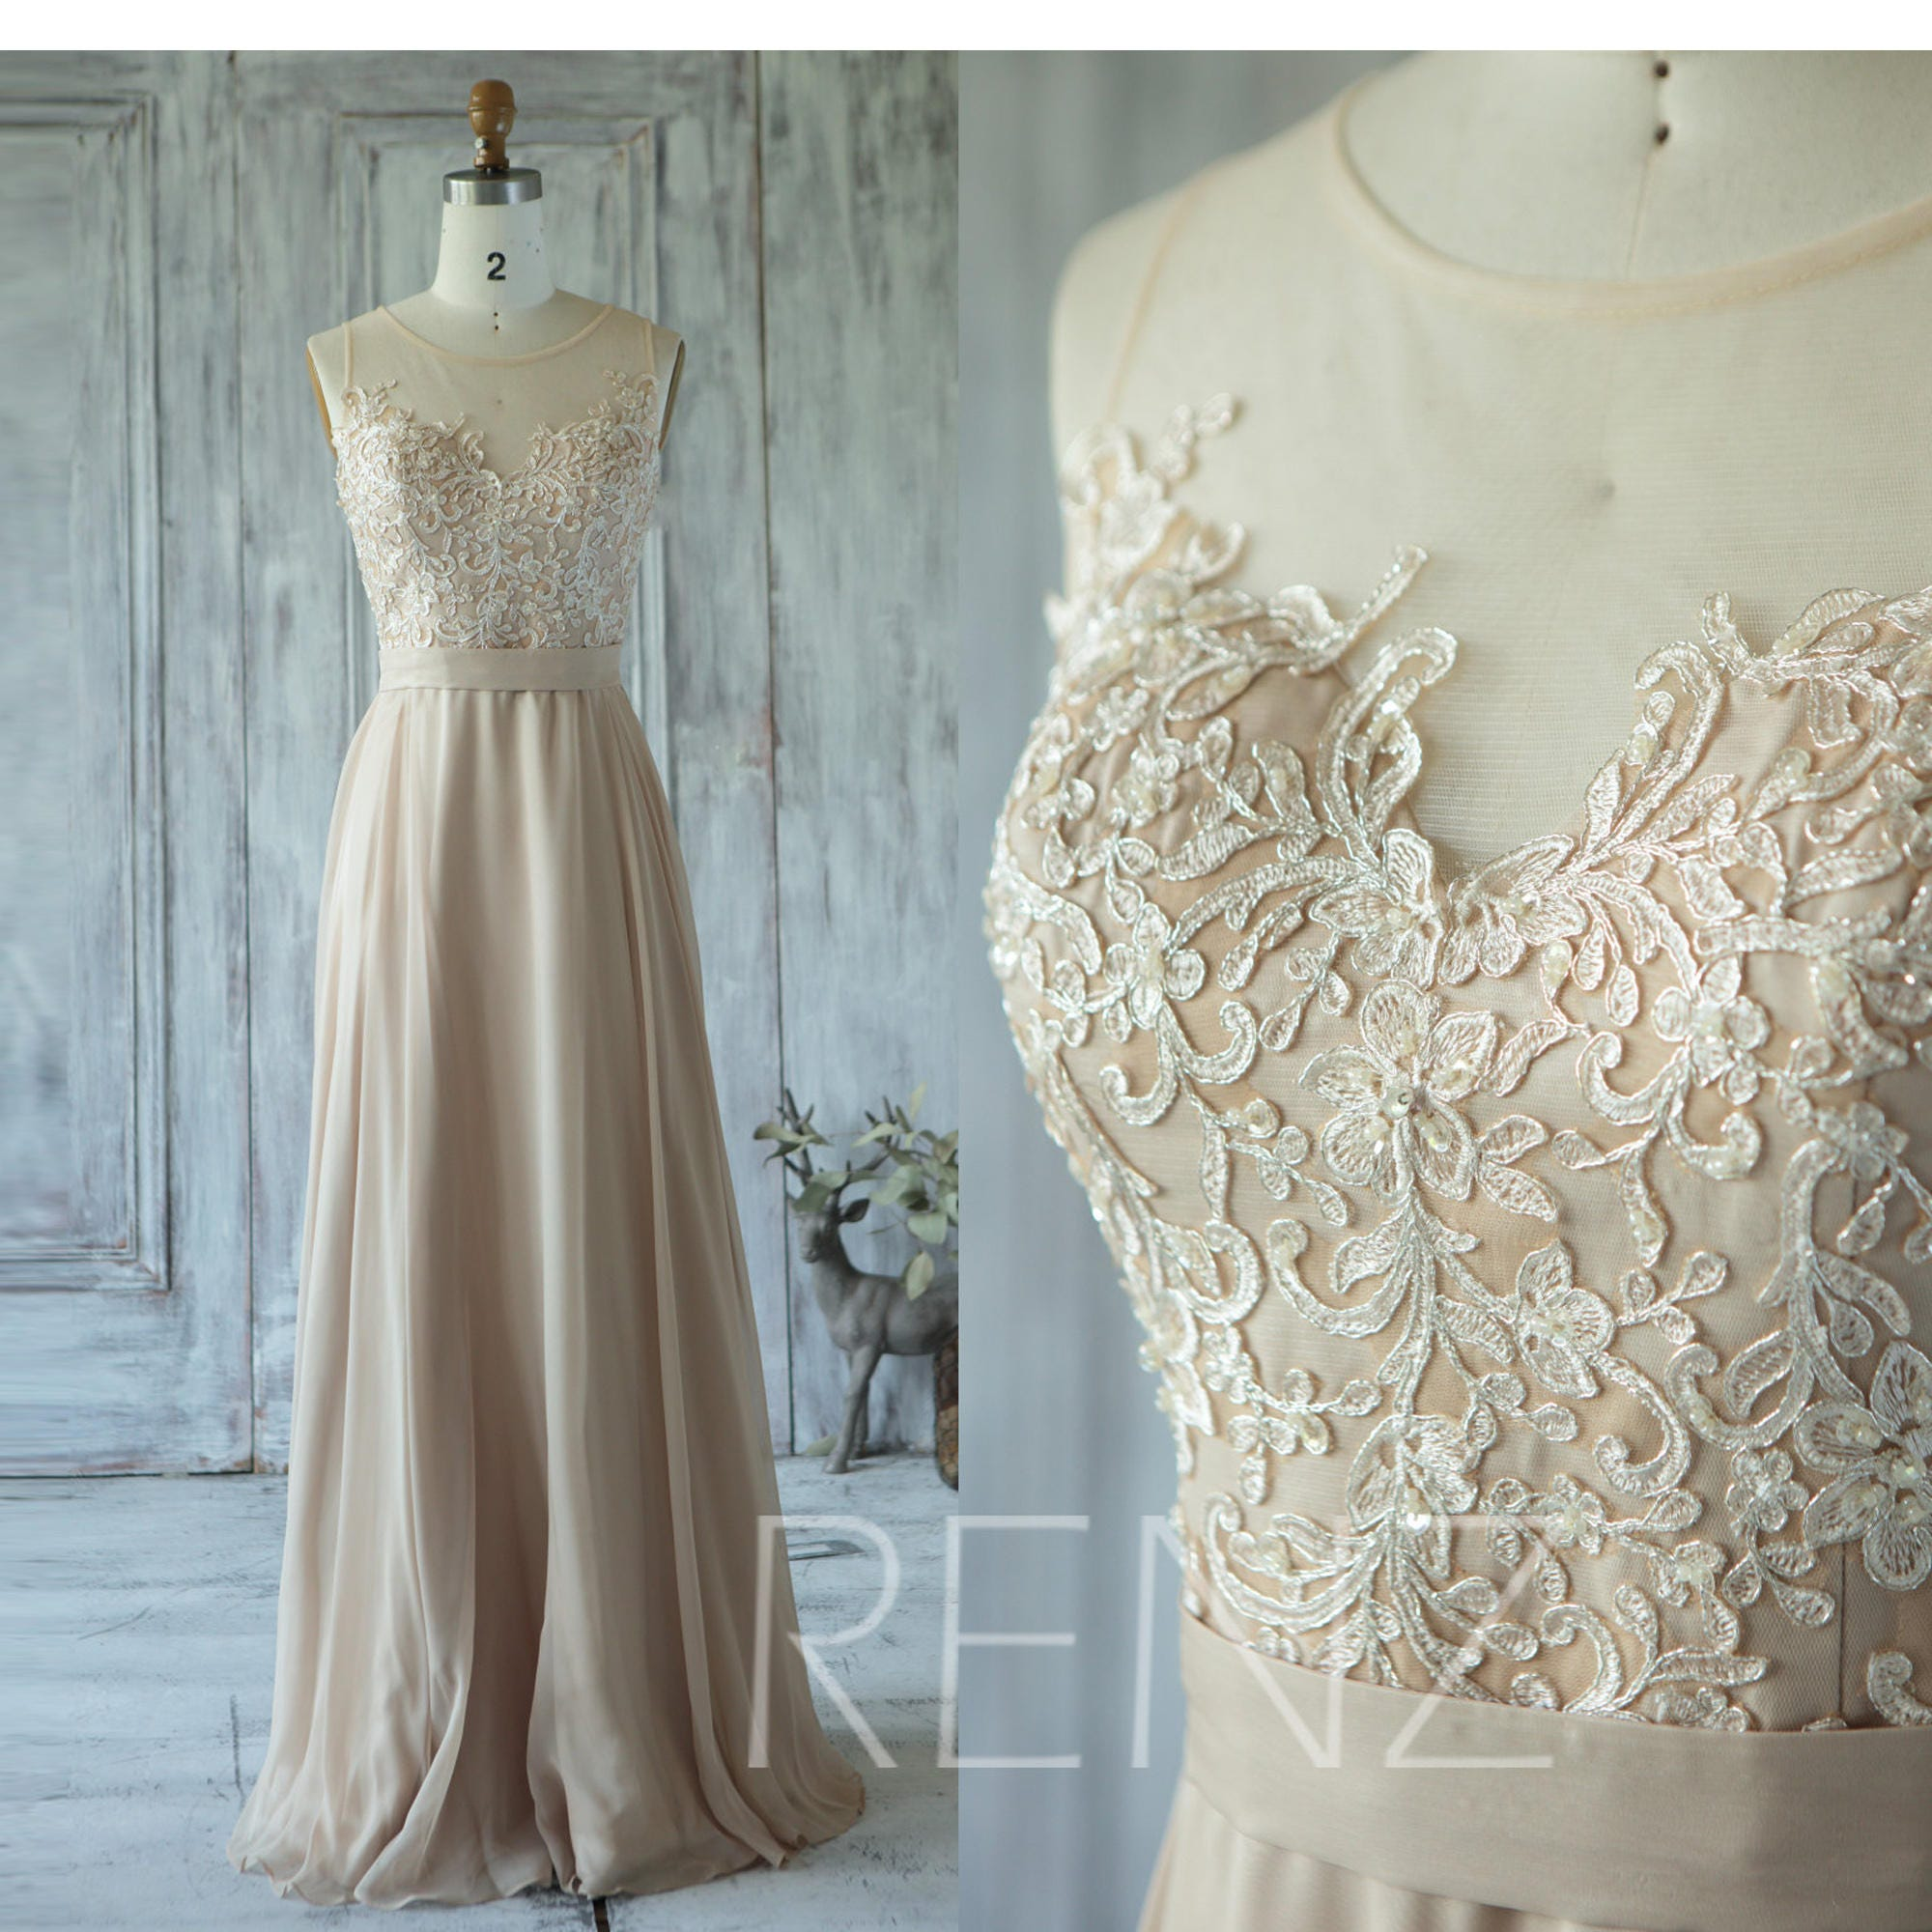 Champagne bridesmaid dress tulle illusion wedding dress zoom ombrellifo Choice Image